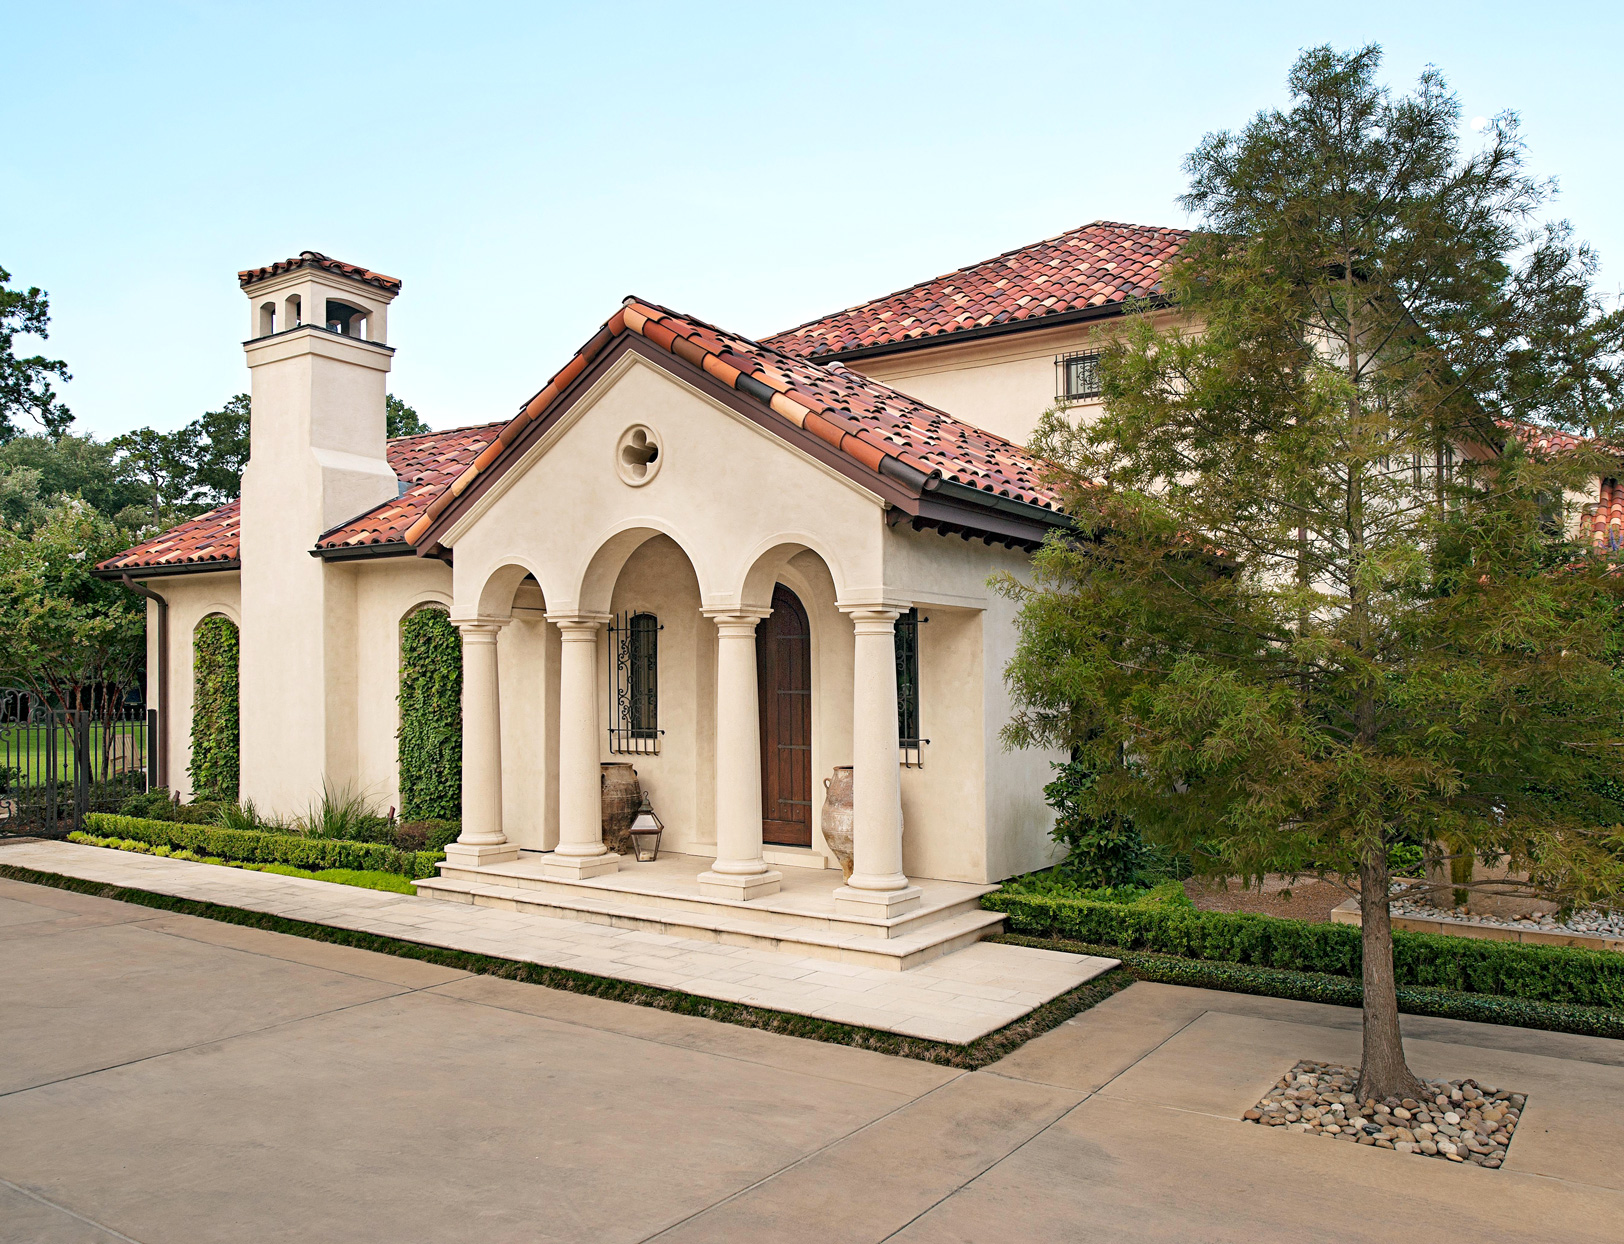 Mediterranean-inspired home with stone columns